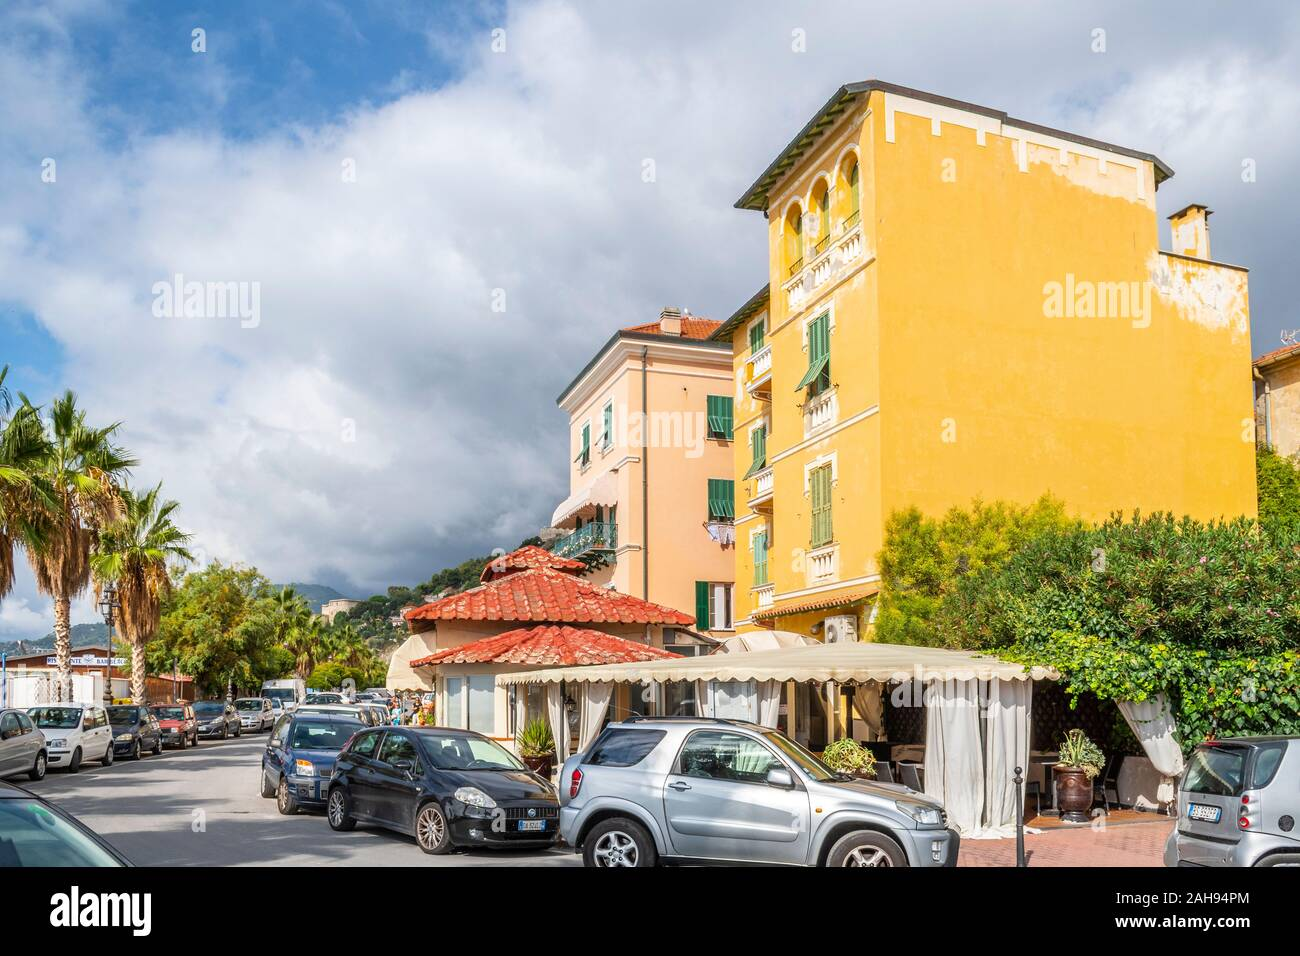 Parked cars line both sides of a narrow street at the Mediterranean coastal resort of Ventimiglia, Italy, on the Italian Riviera. Stock Photo